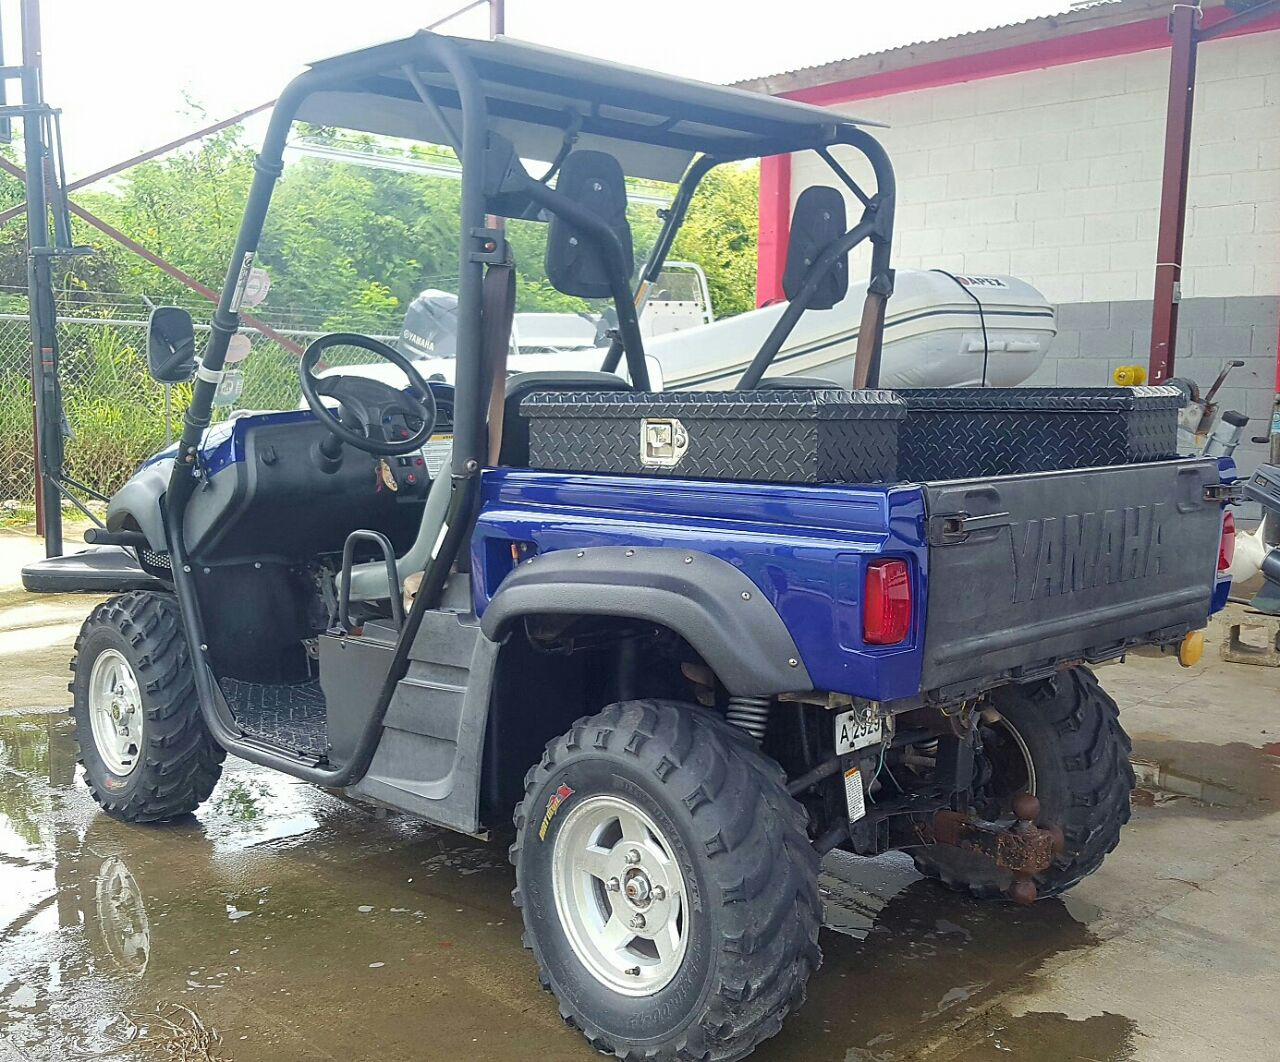 2007 Yamaha Rhino 660 Auto 4x4 For Sale In St Johns Antigua Vi Fuel Filter Location Img 20170803 Wa0006